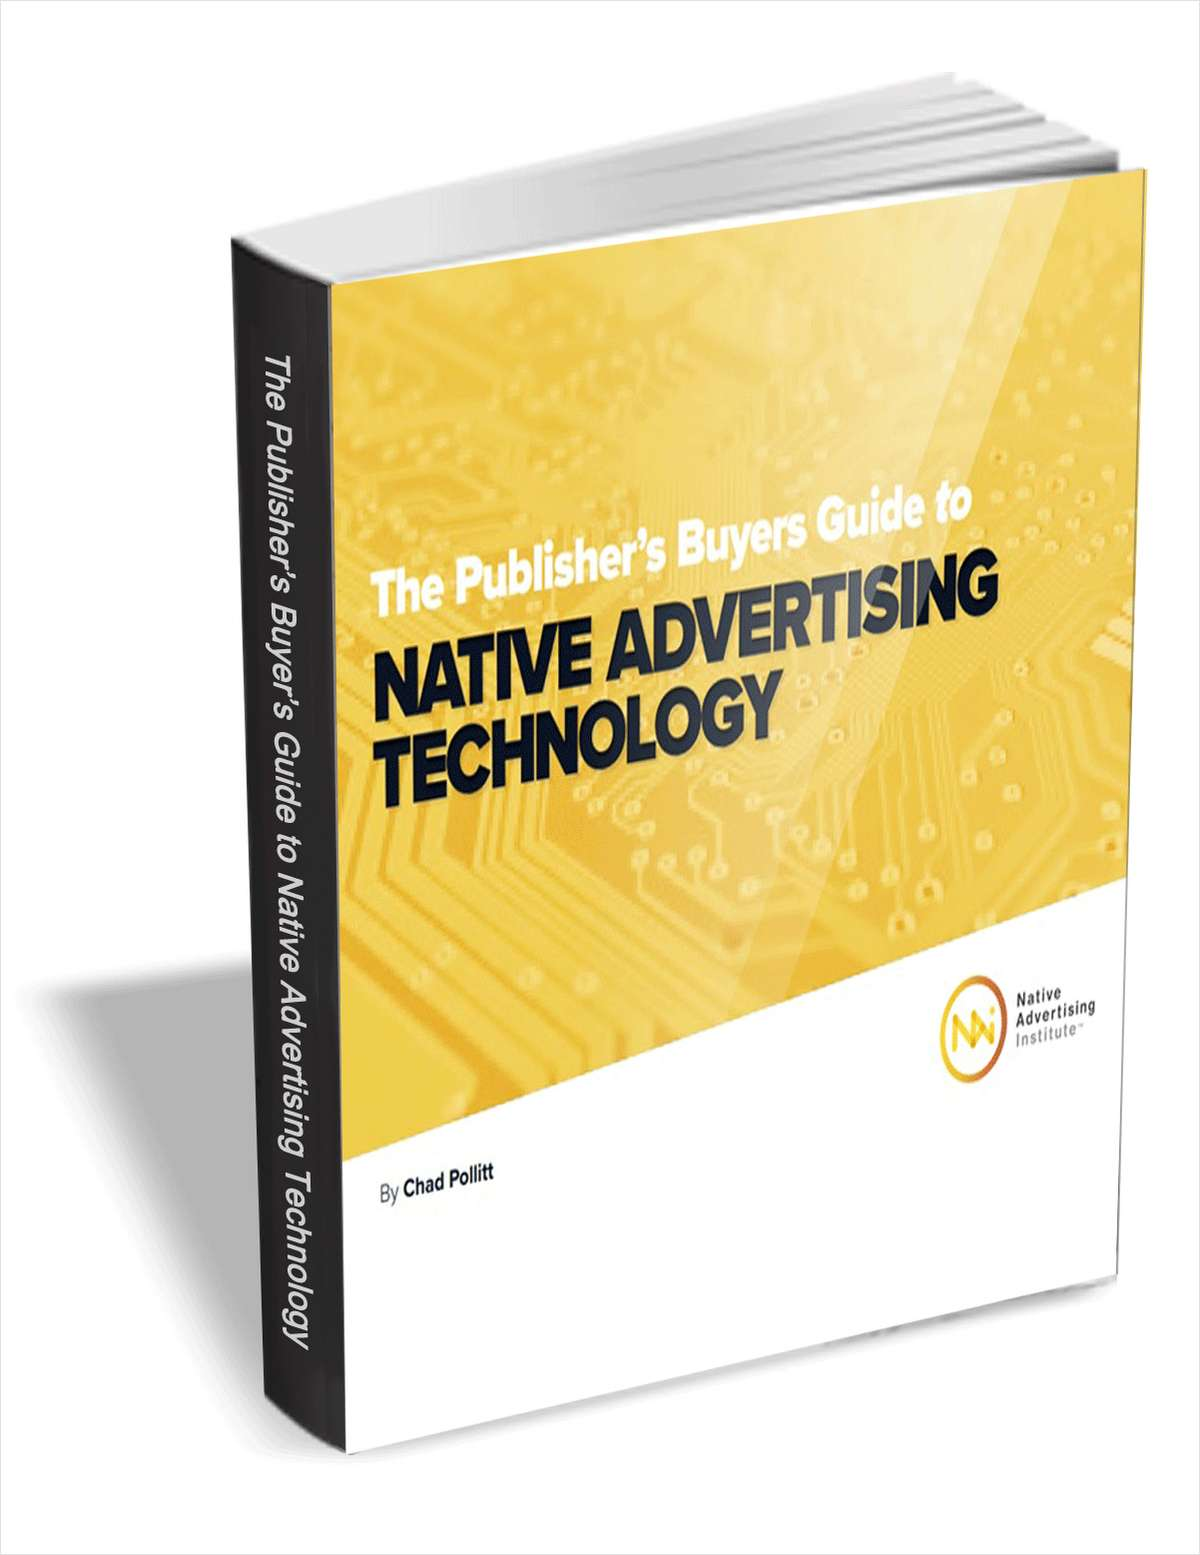 The Publisher's Buyers Guide to Native Advertising Technology